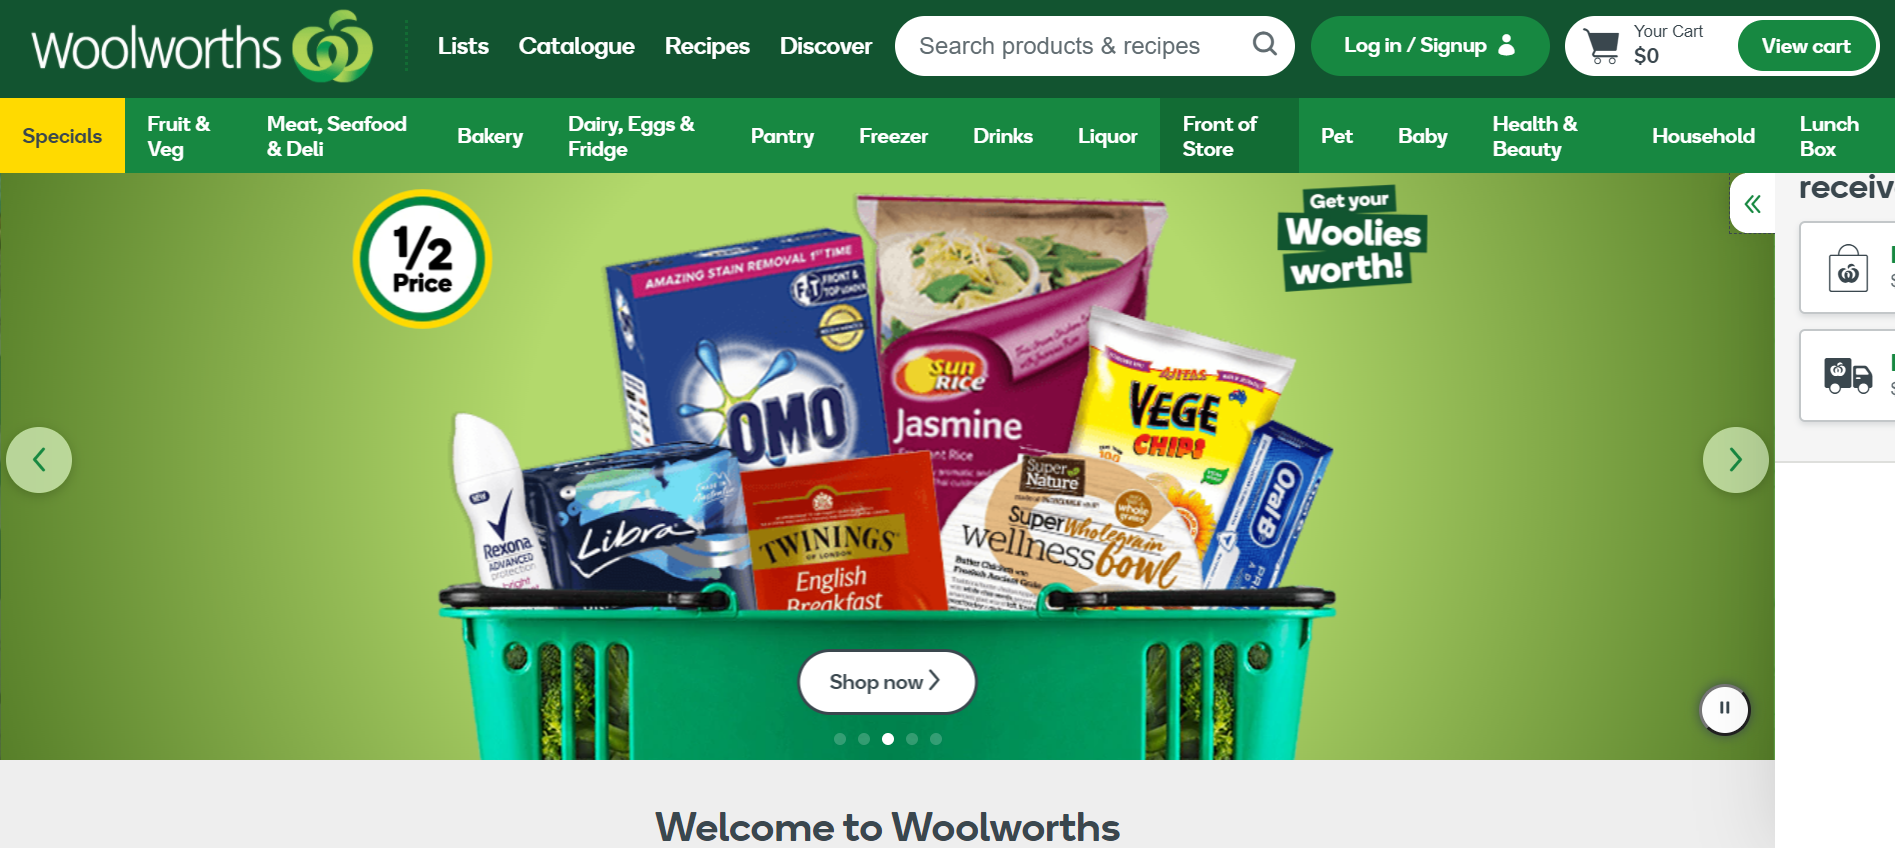 About Woolworths